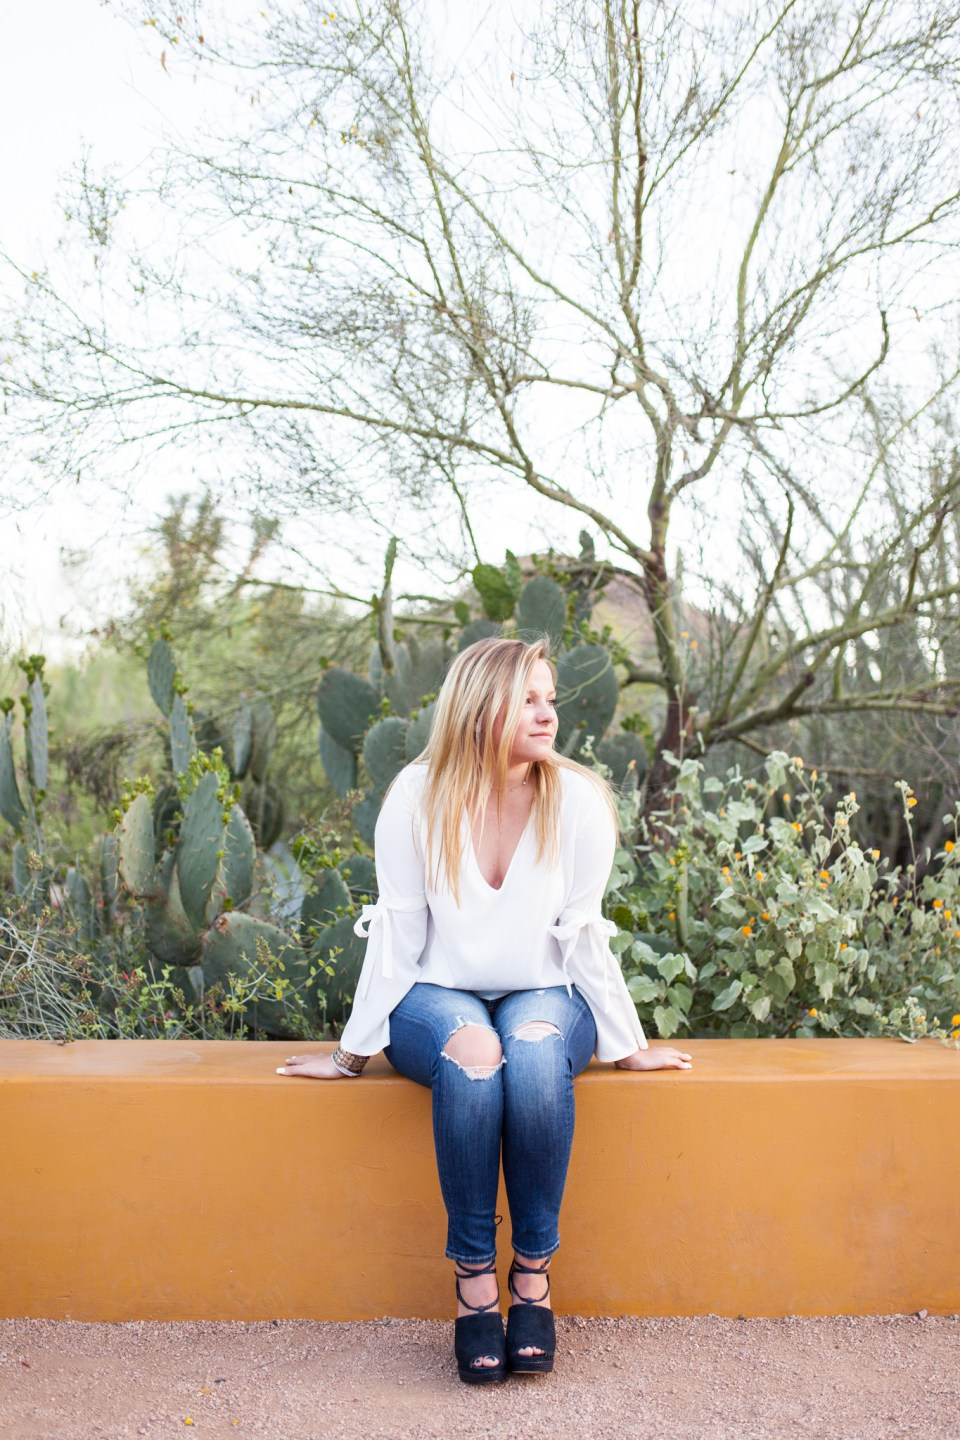 desert senior portraits with yellow bench and cactus